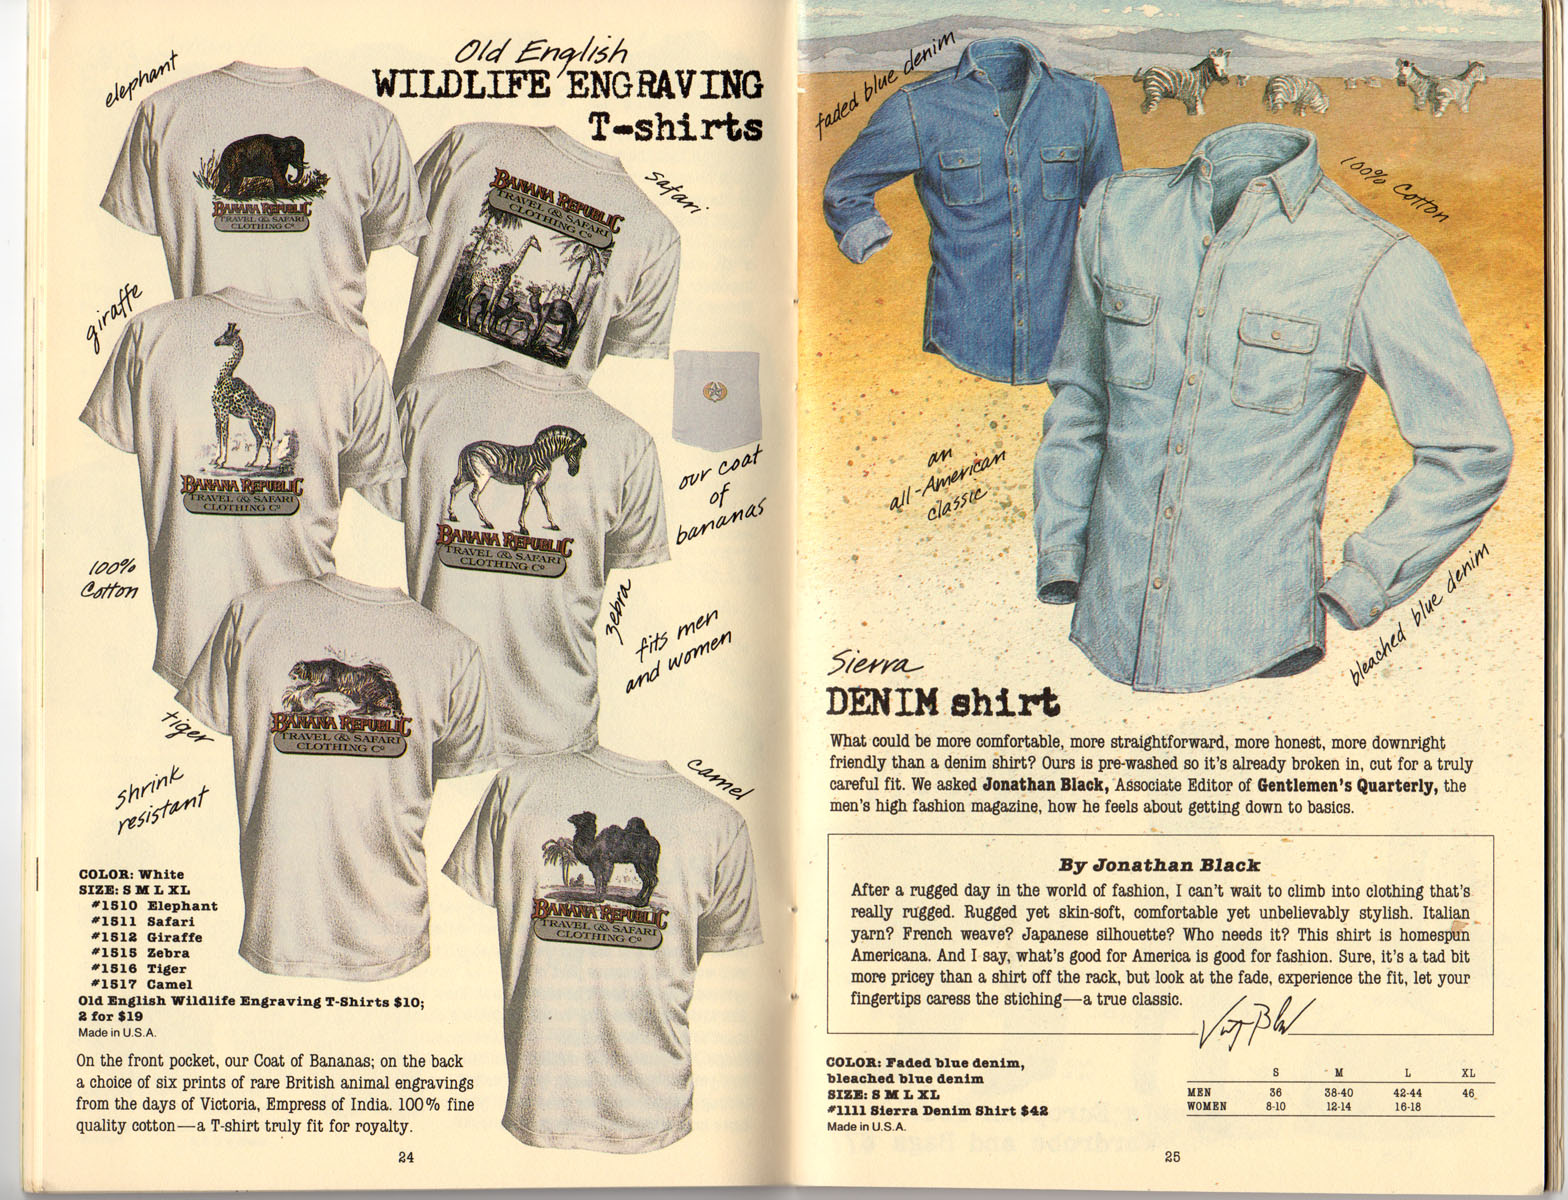 Banana Republic Summer 1985 Update #24 Old English Engraving T-Shirts, Denim Shirt